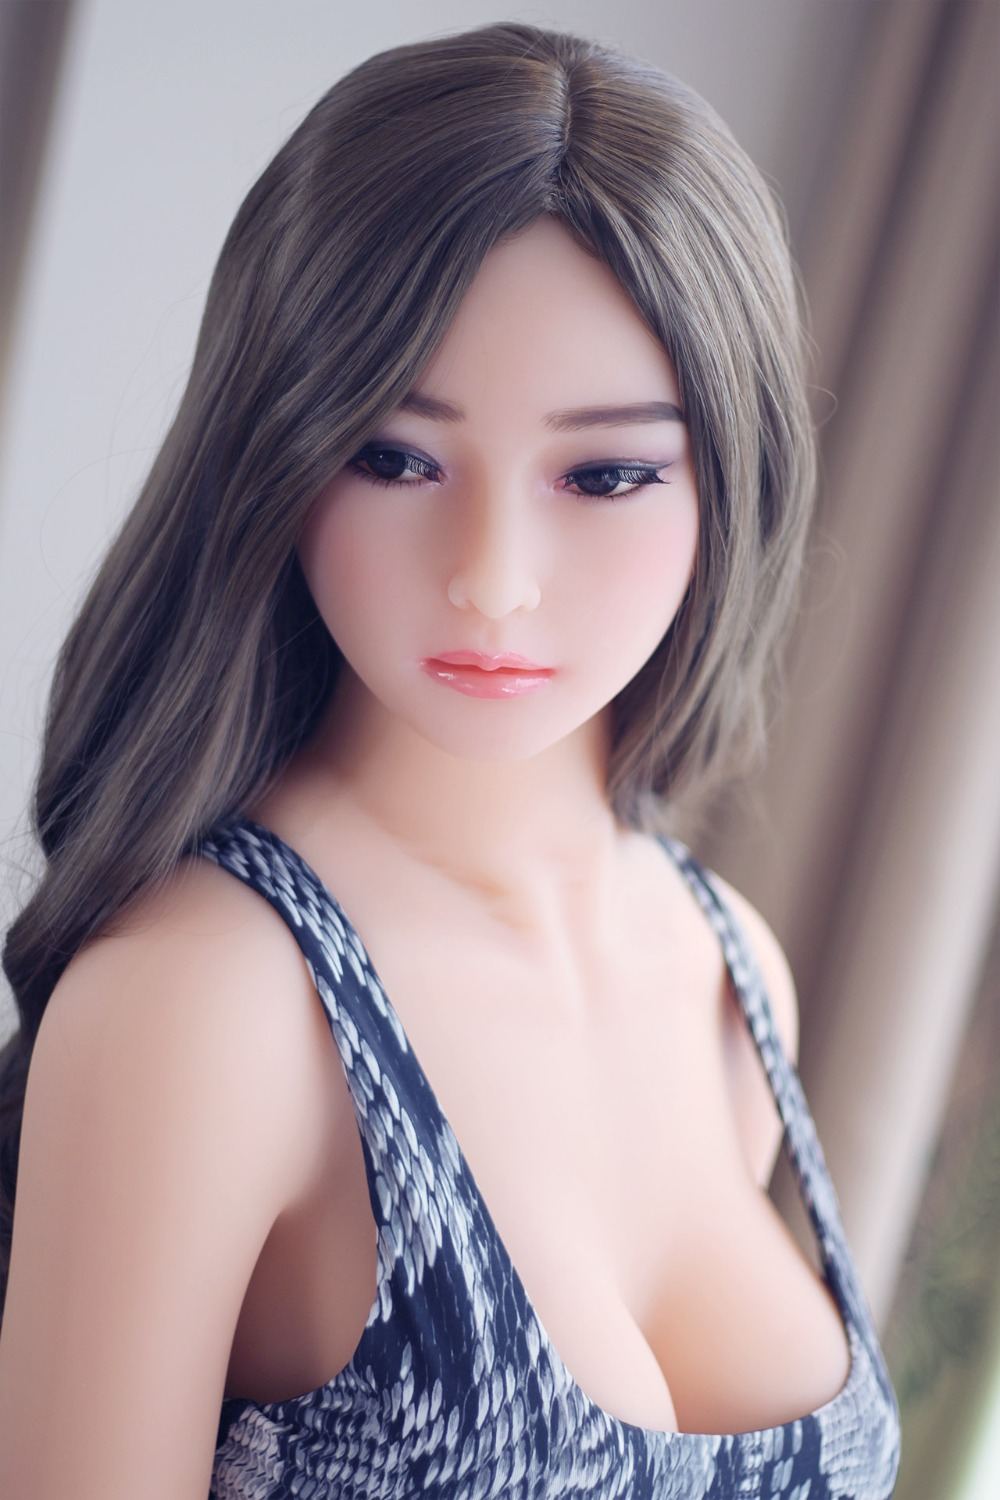 2017 real silicone sex dolls japanese anime love doll realistic toys for men big breast sexy 168cm mini vagina adult life full real silicone sex dolls japanese magic eyes anime love doll realistic ass toys for men big breast sexy vagina adult life full